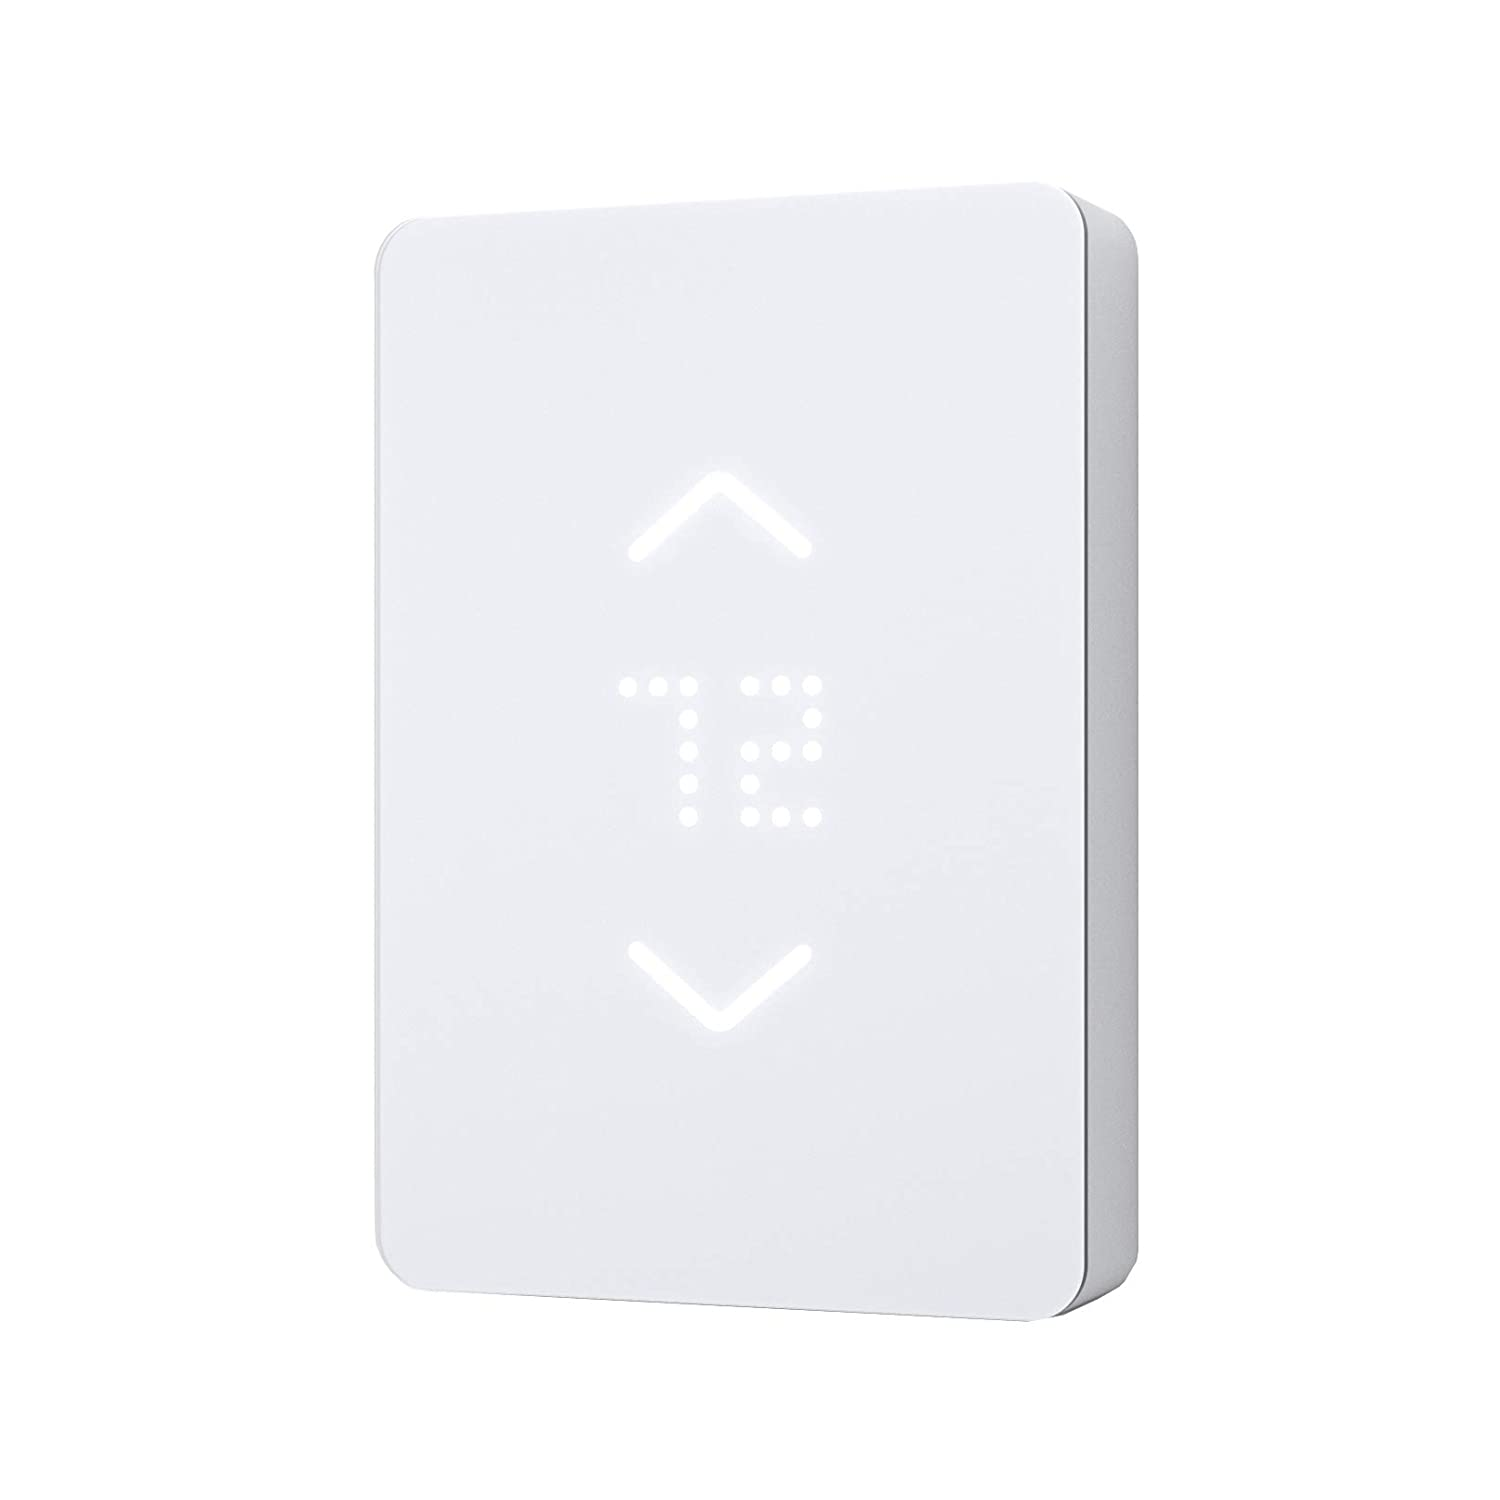 Mysa Smart Thermostat For Electric Baseboard Heaters Wiring 2 Together